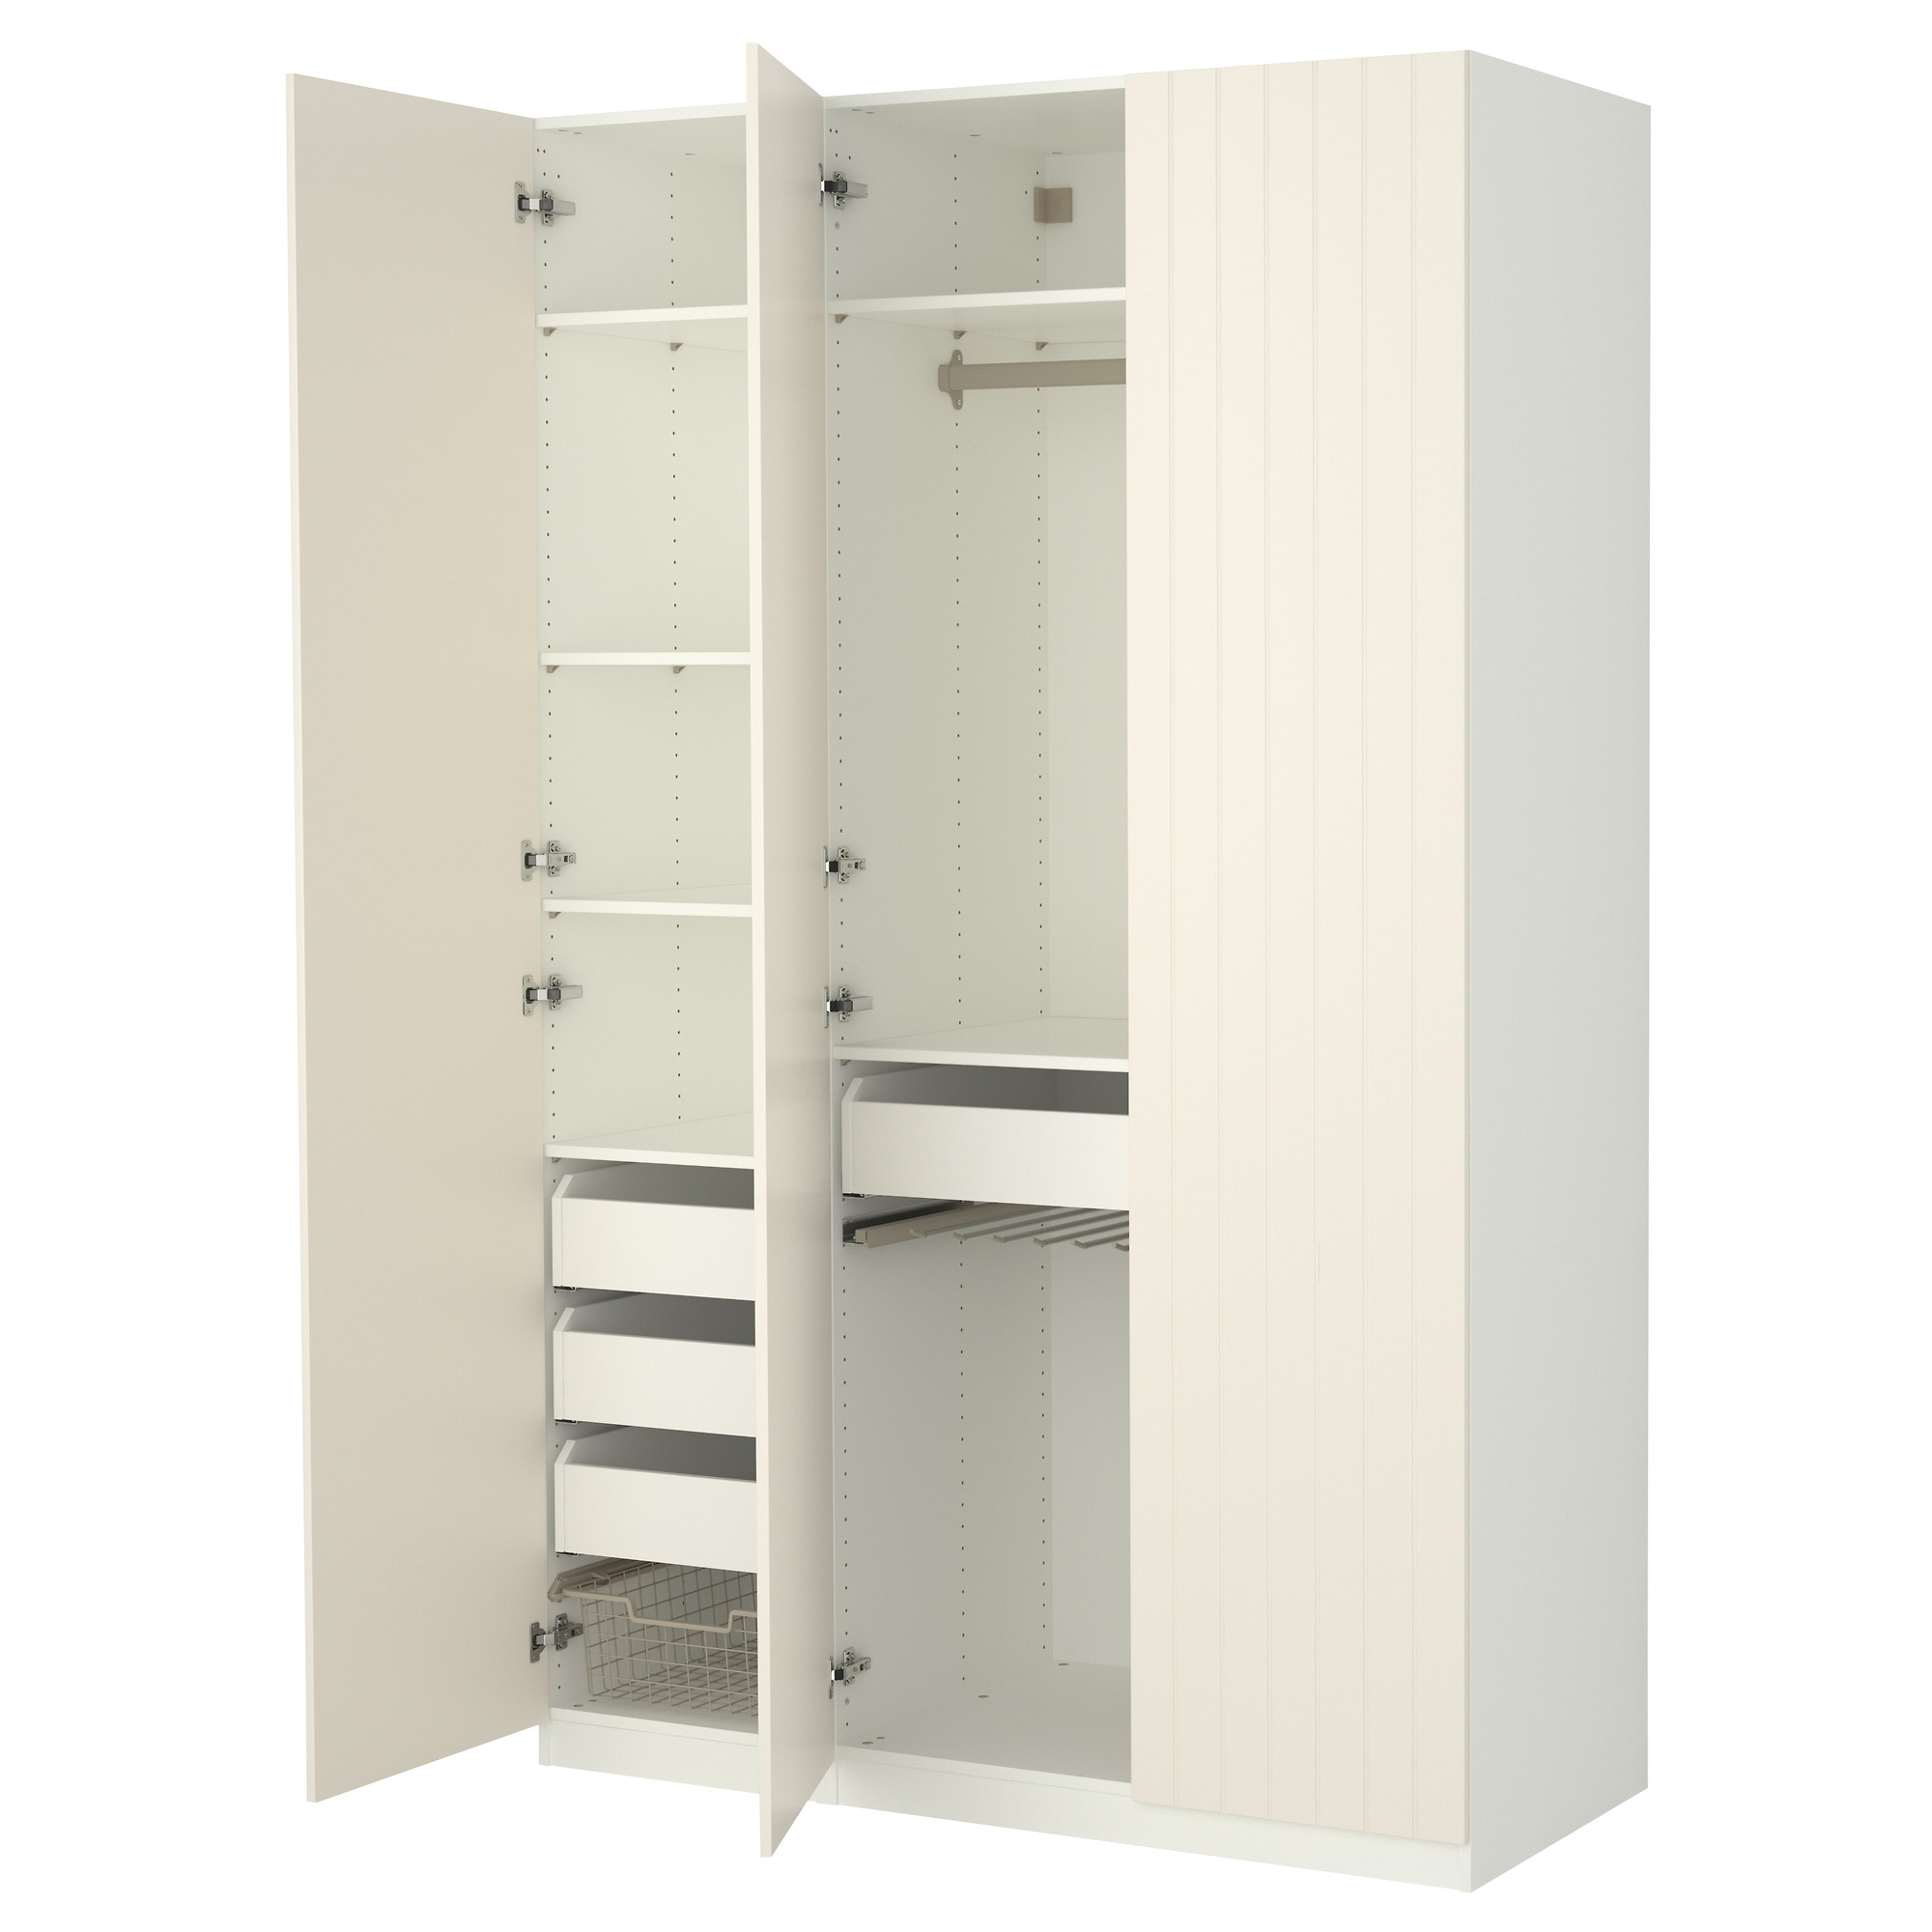 Image Result For Freestanding Closet System